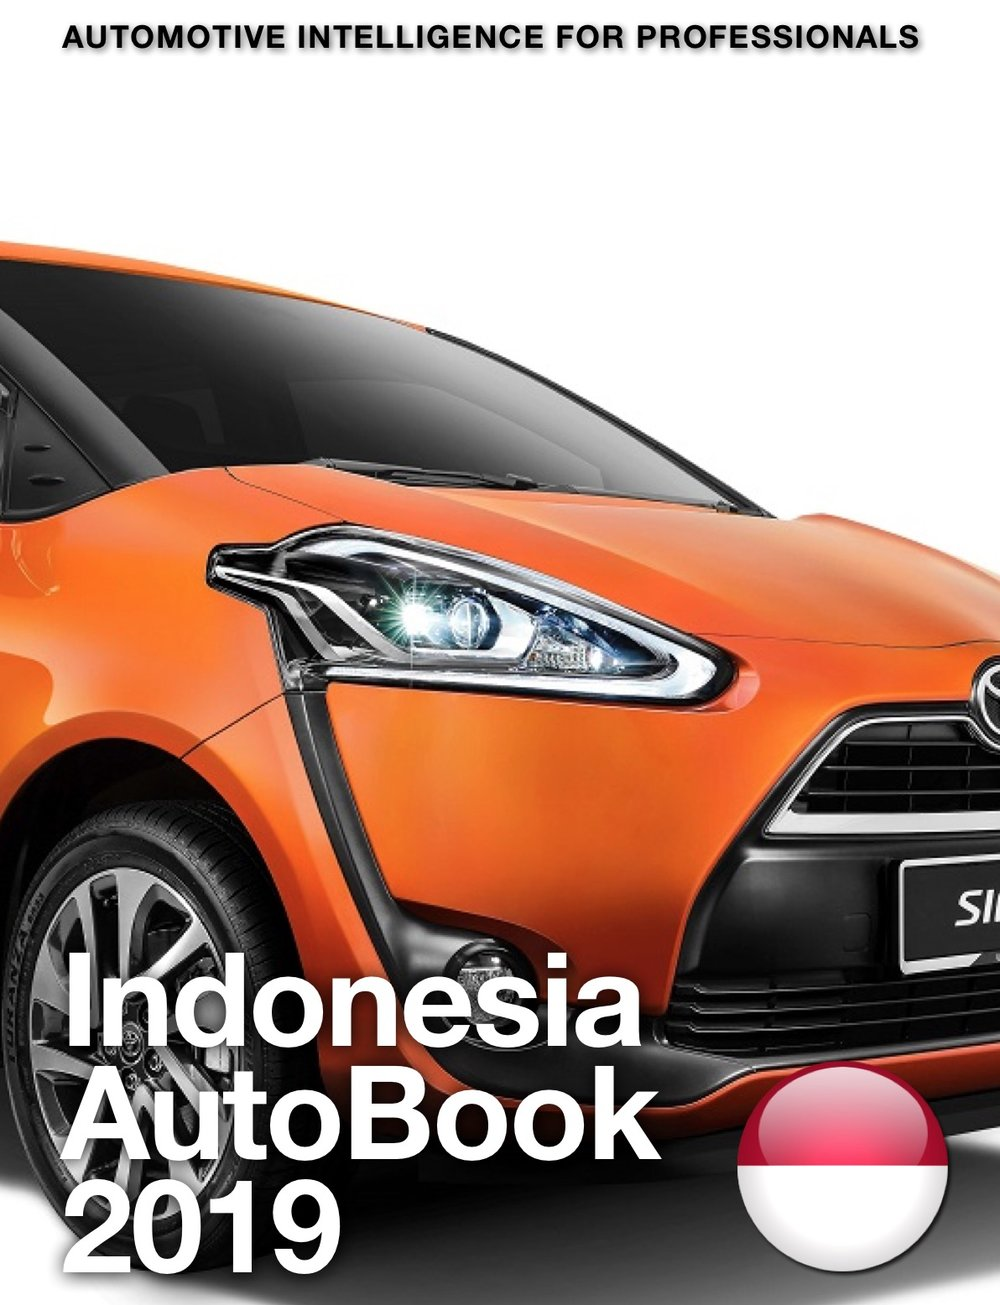 Indonesia Autobook 2019 Cover.jpg